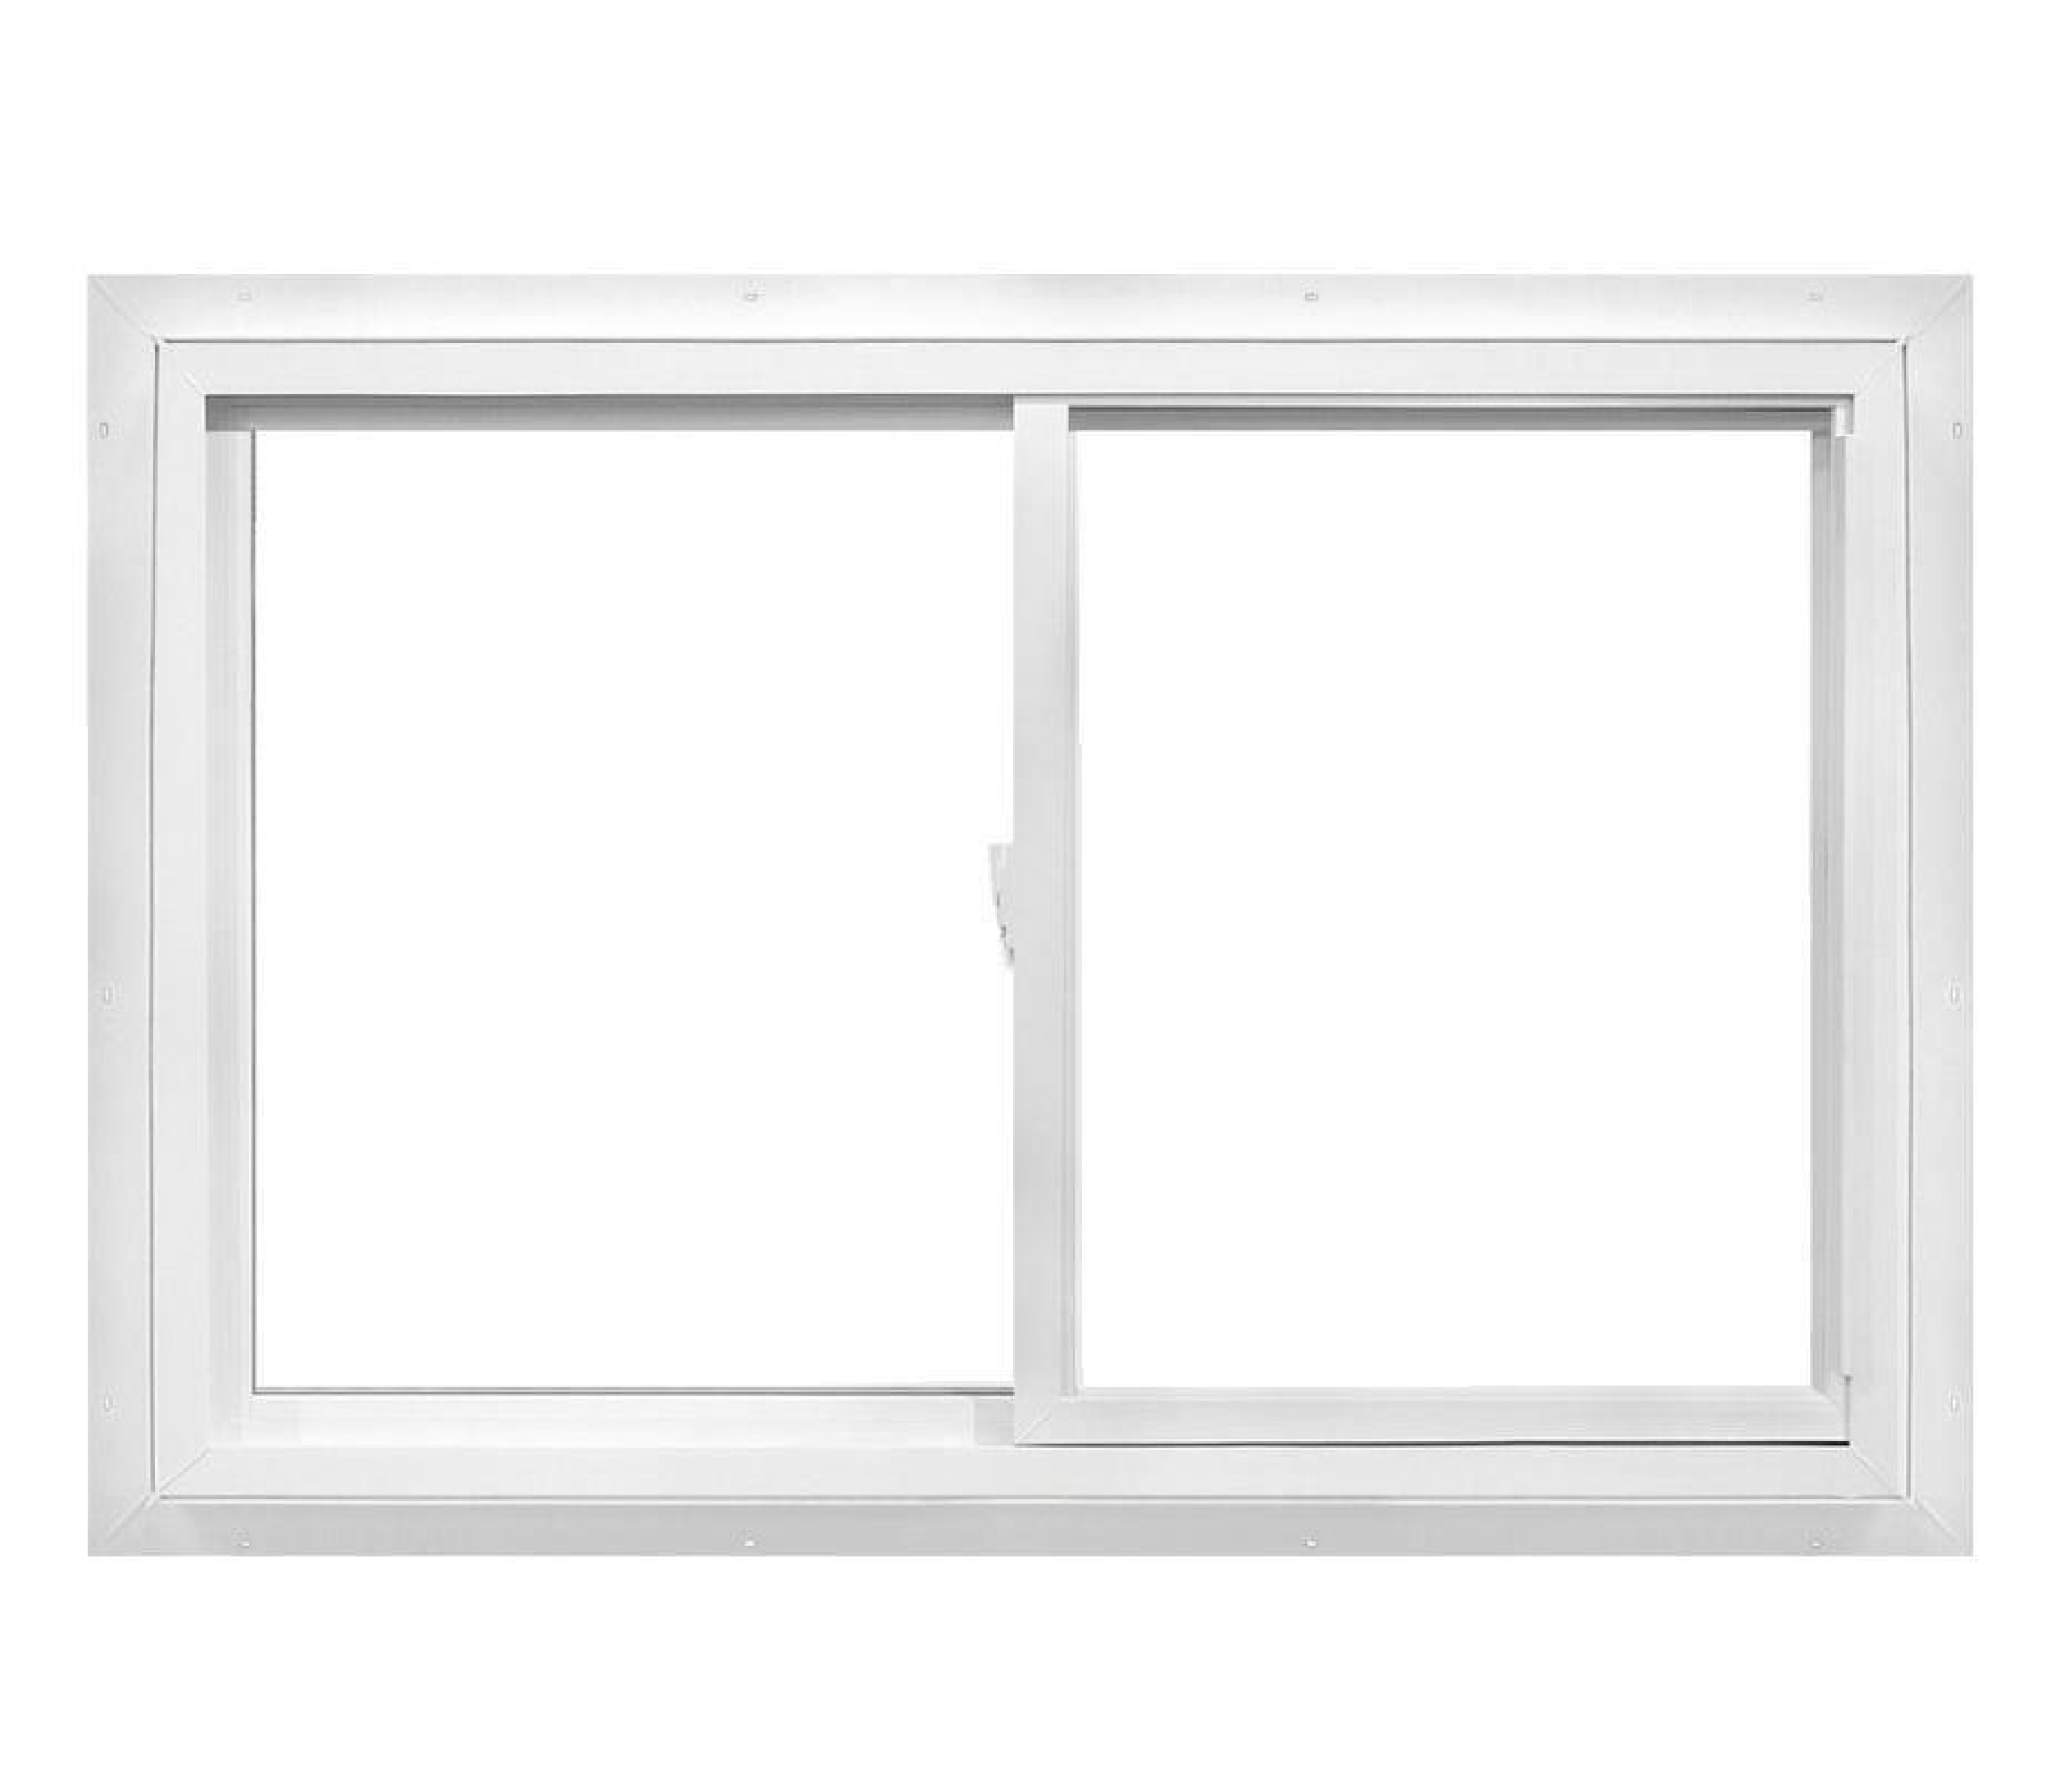 Sliding-Replacement-Windows